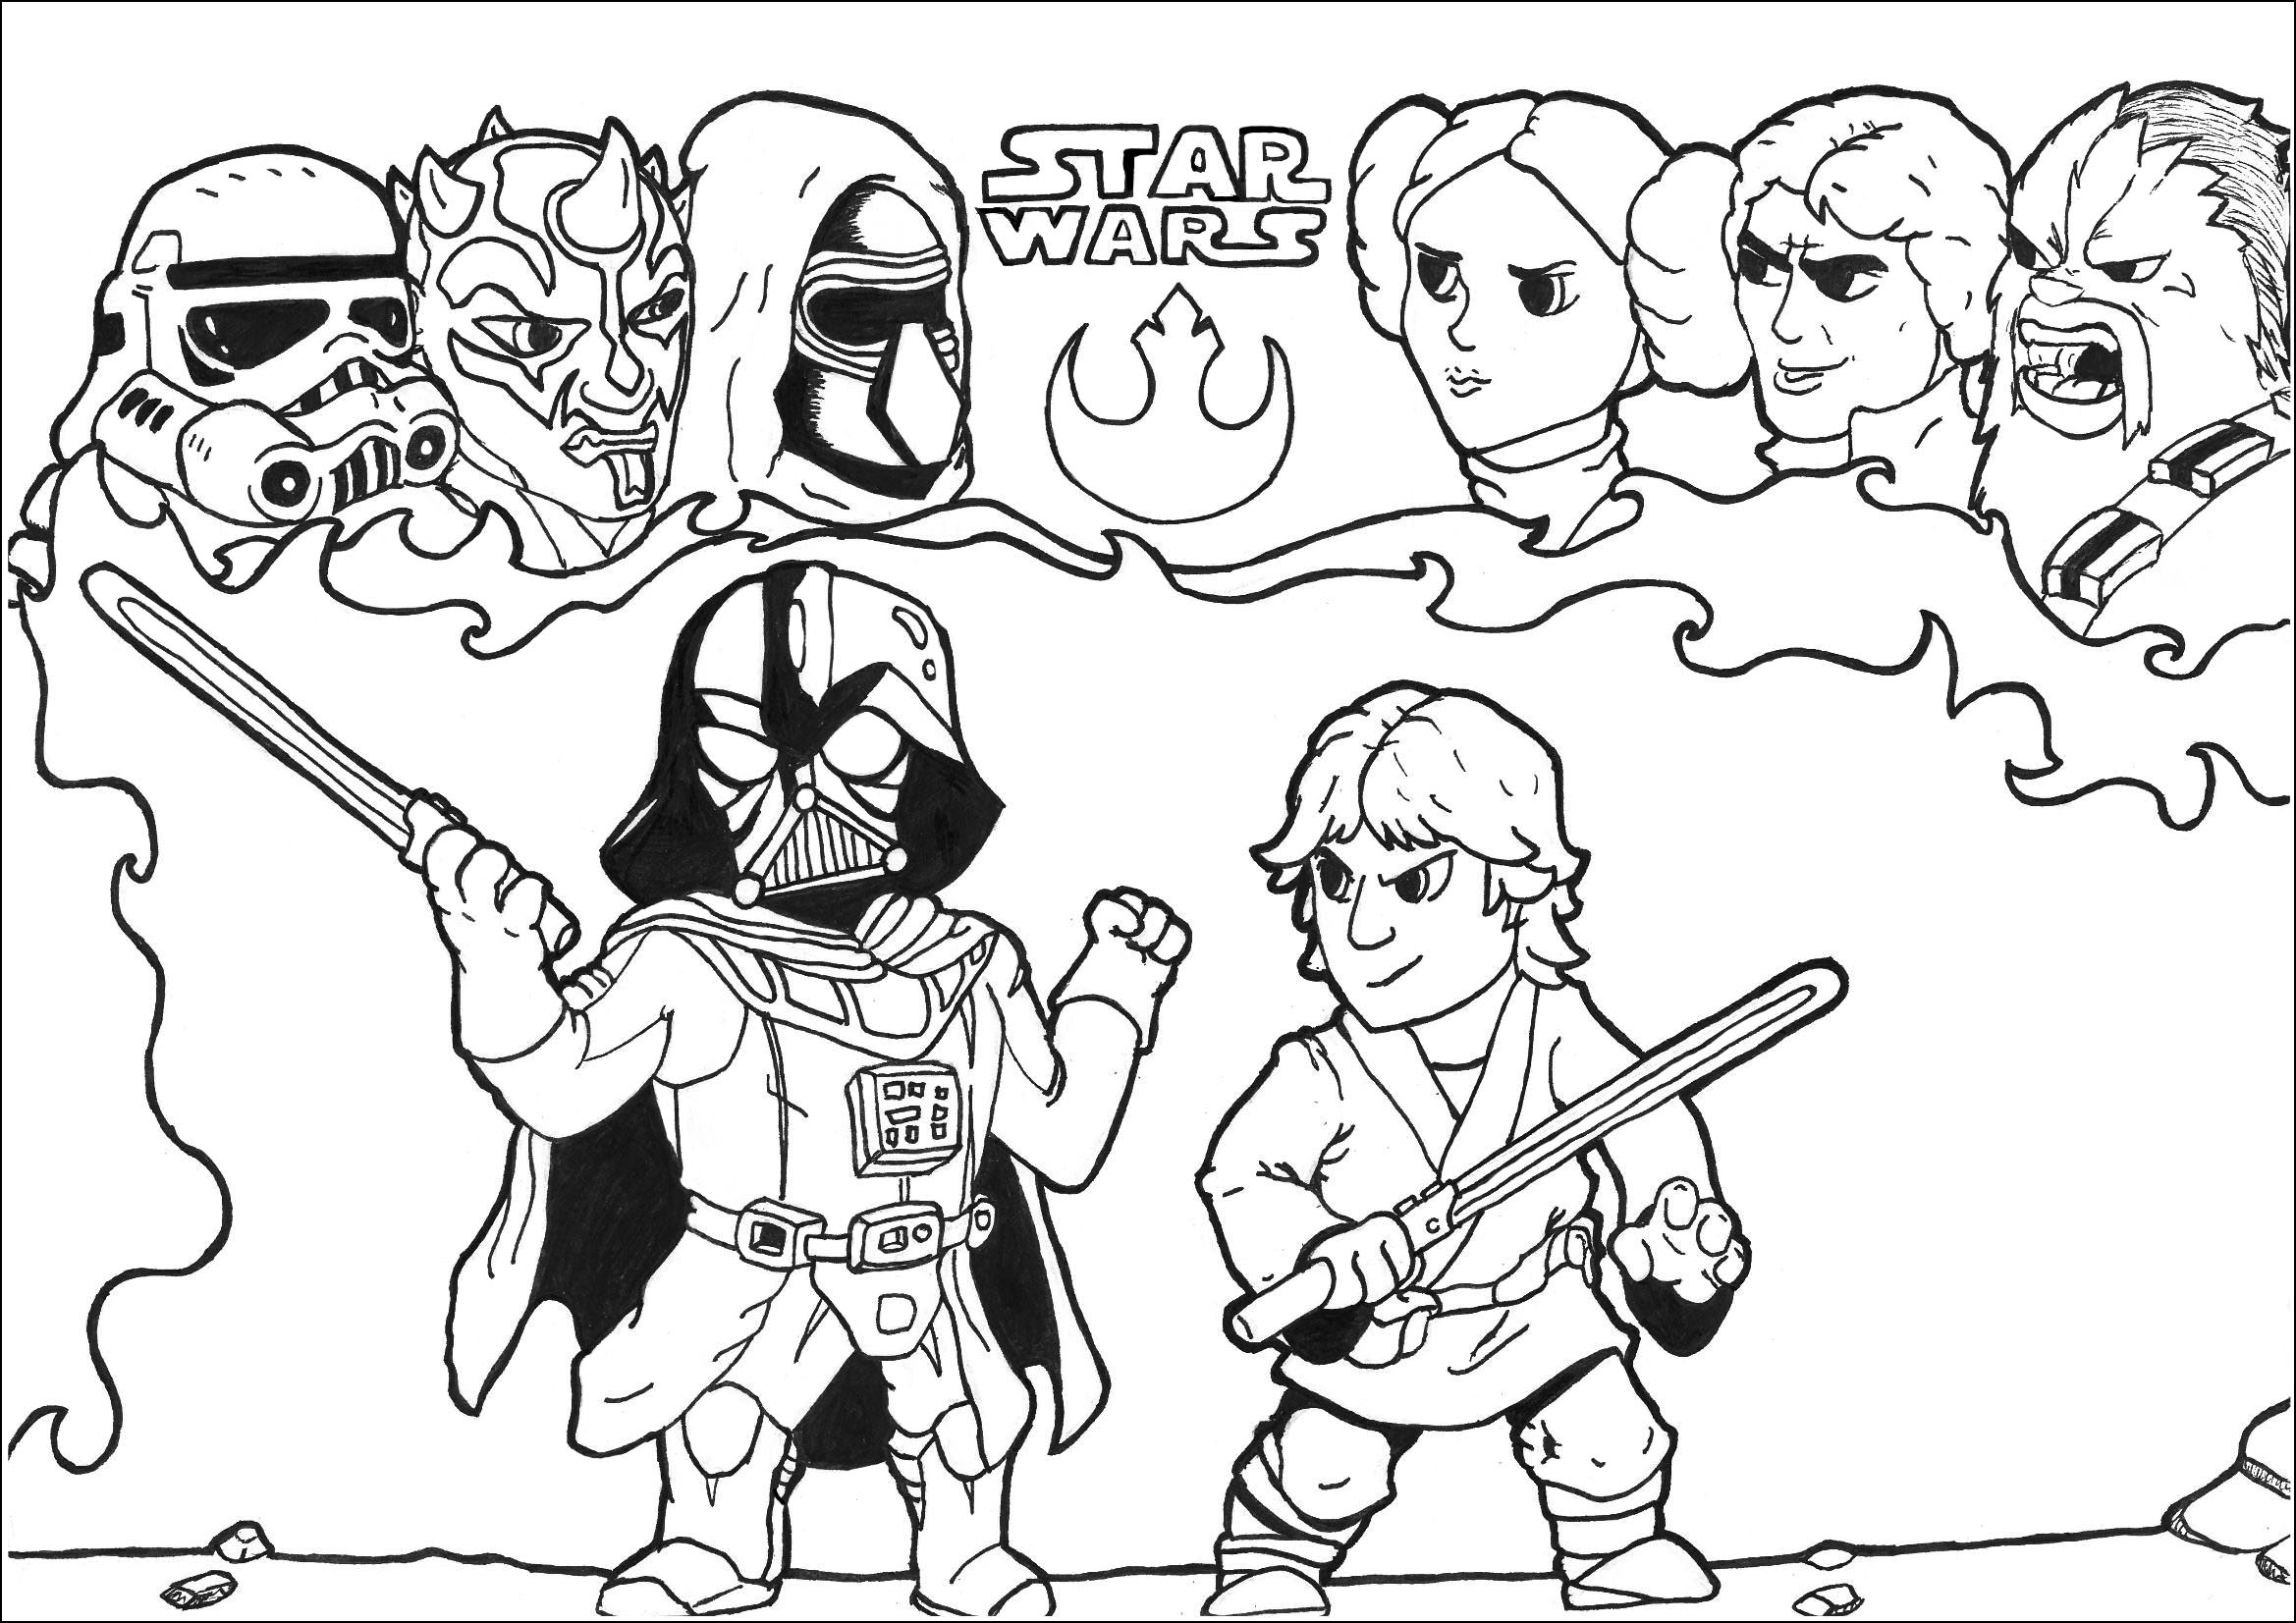 star wars coloring pages printable star wars coloring pages original coloring pages wars coloring star pages printable